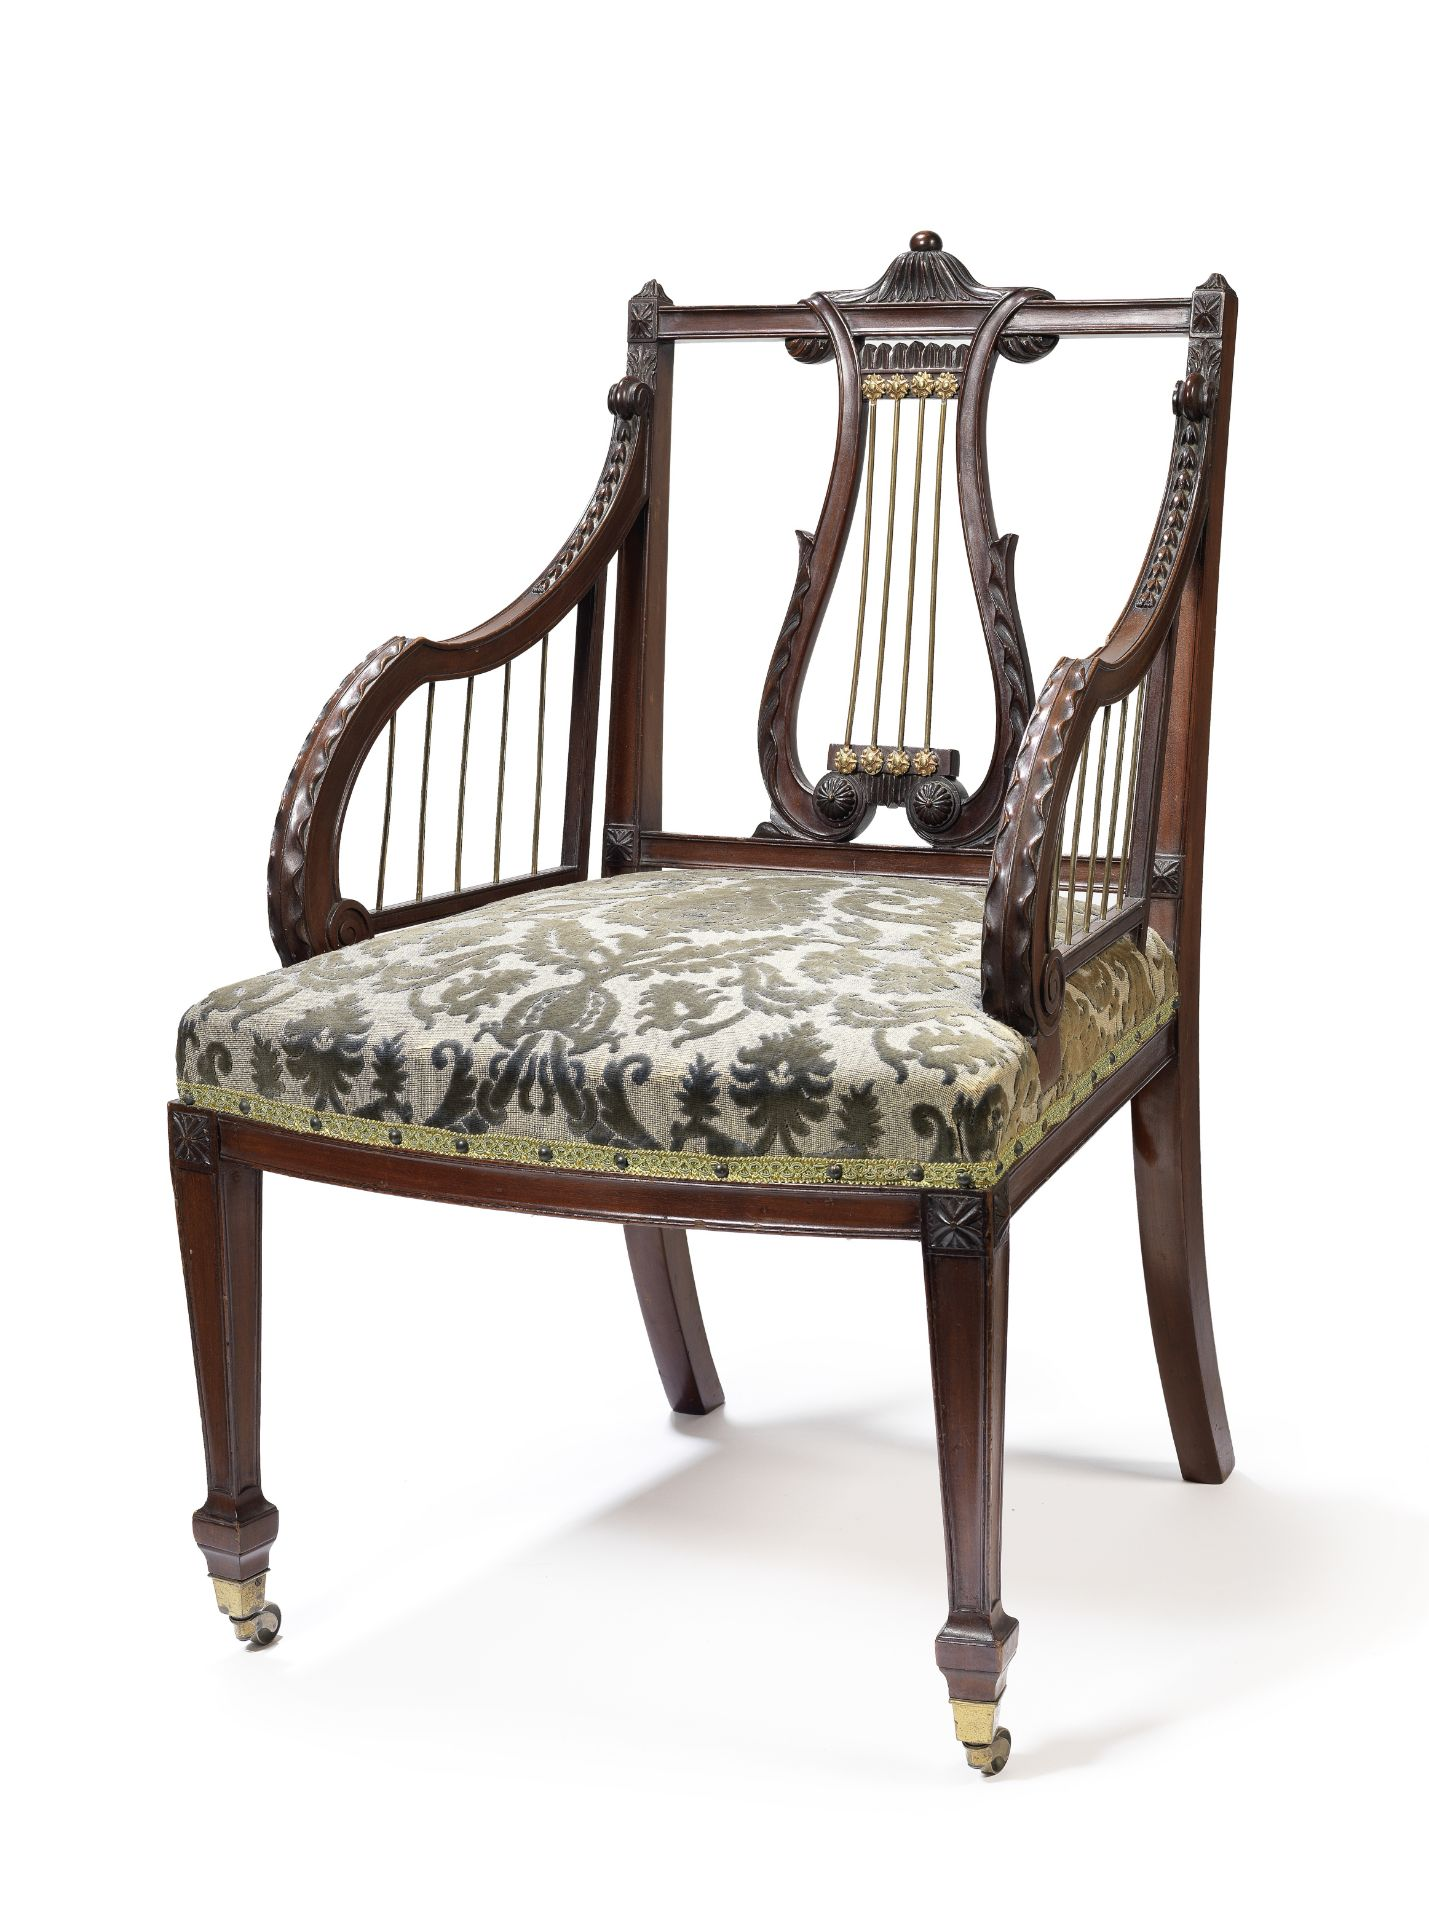 Los 77 - A late Victorian brass mounted mahogany open armchair possibly by Gillows, after a design by John...